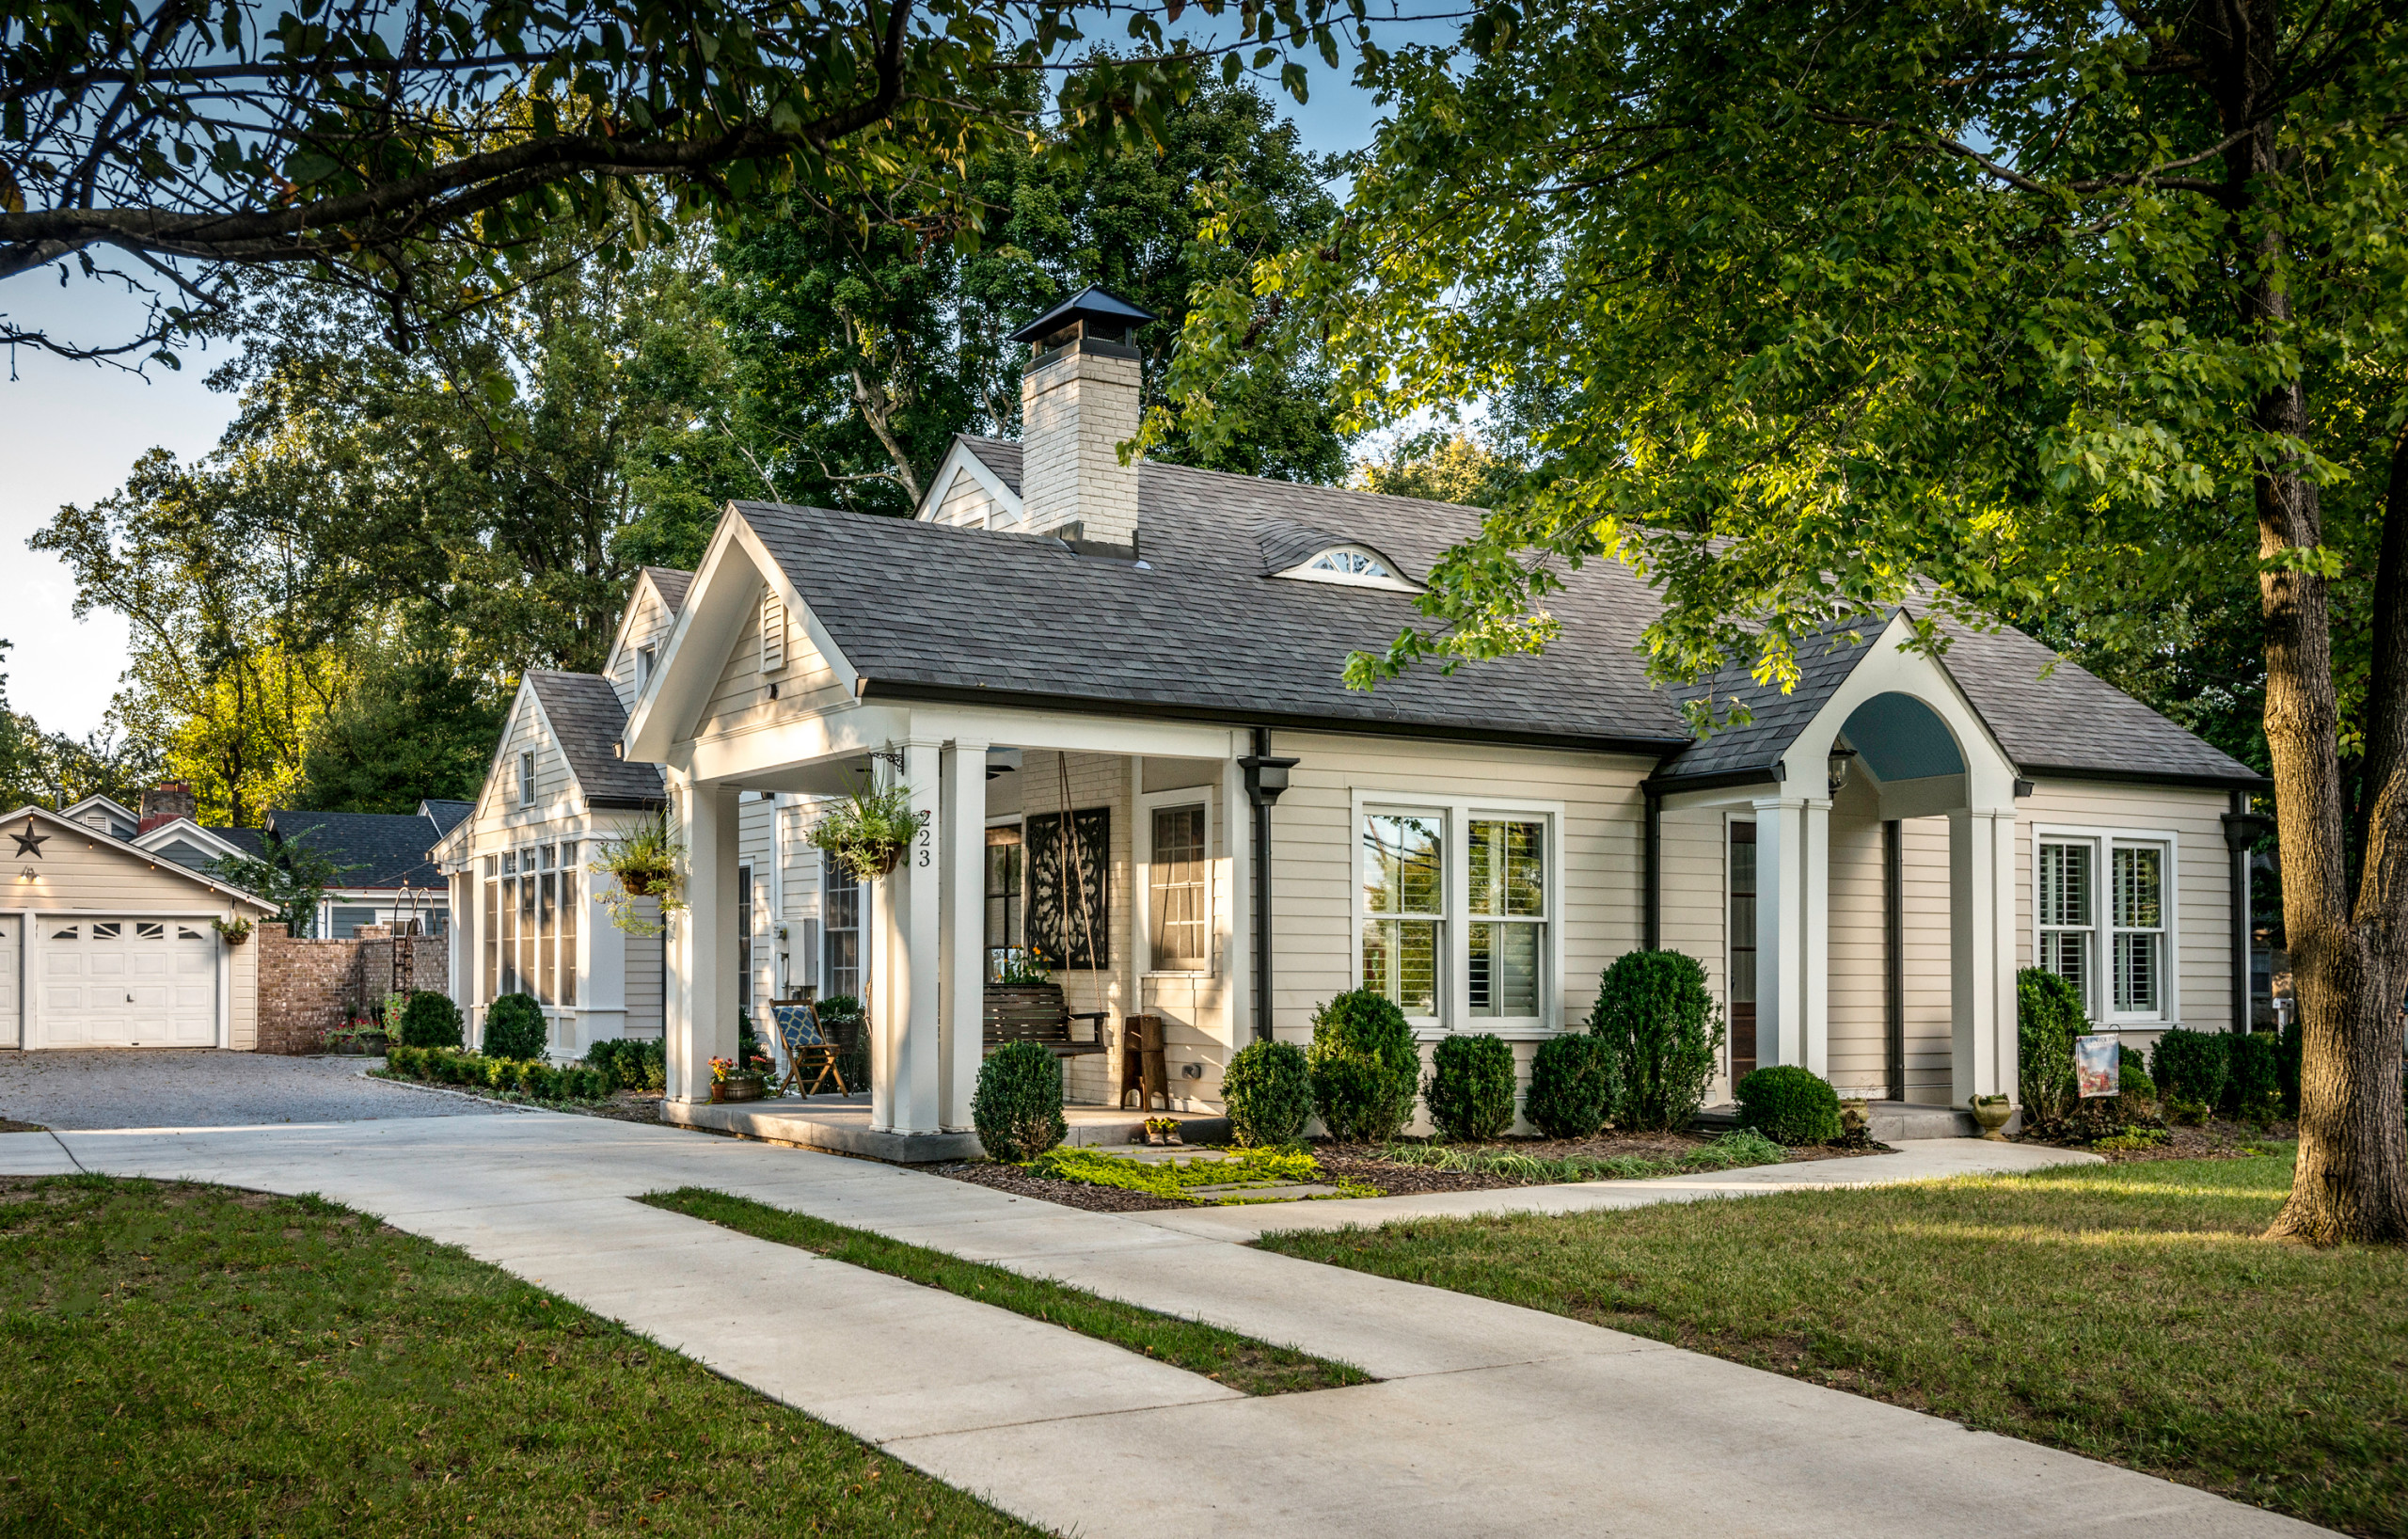 A New Roof Checklist for Homeowners